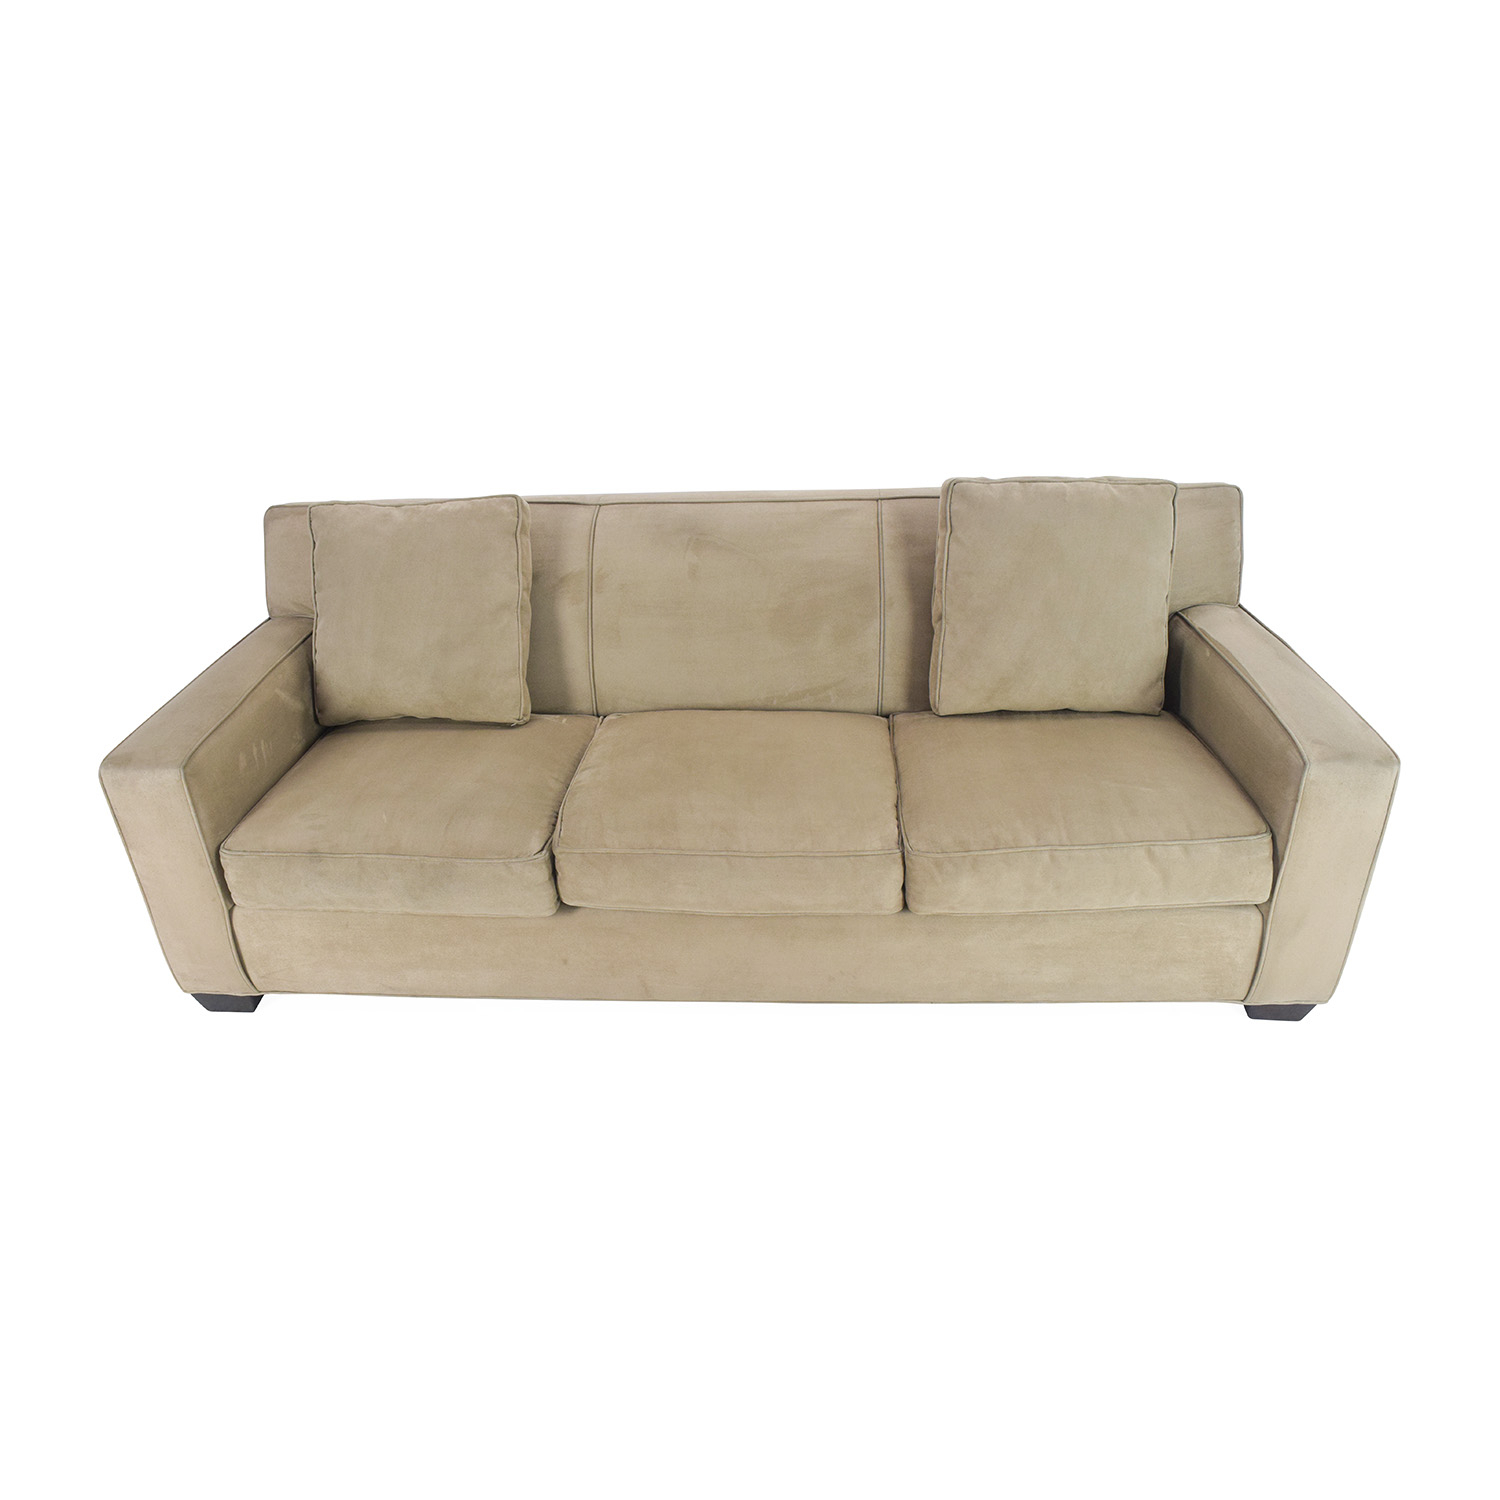 78% Off – Crate And Barrel Crate And Barrel Cameron Sofa / Sofas Within Cameron Sofa Chairs (View 9 of 25)